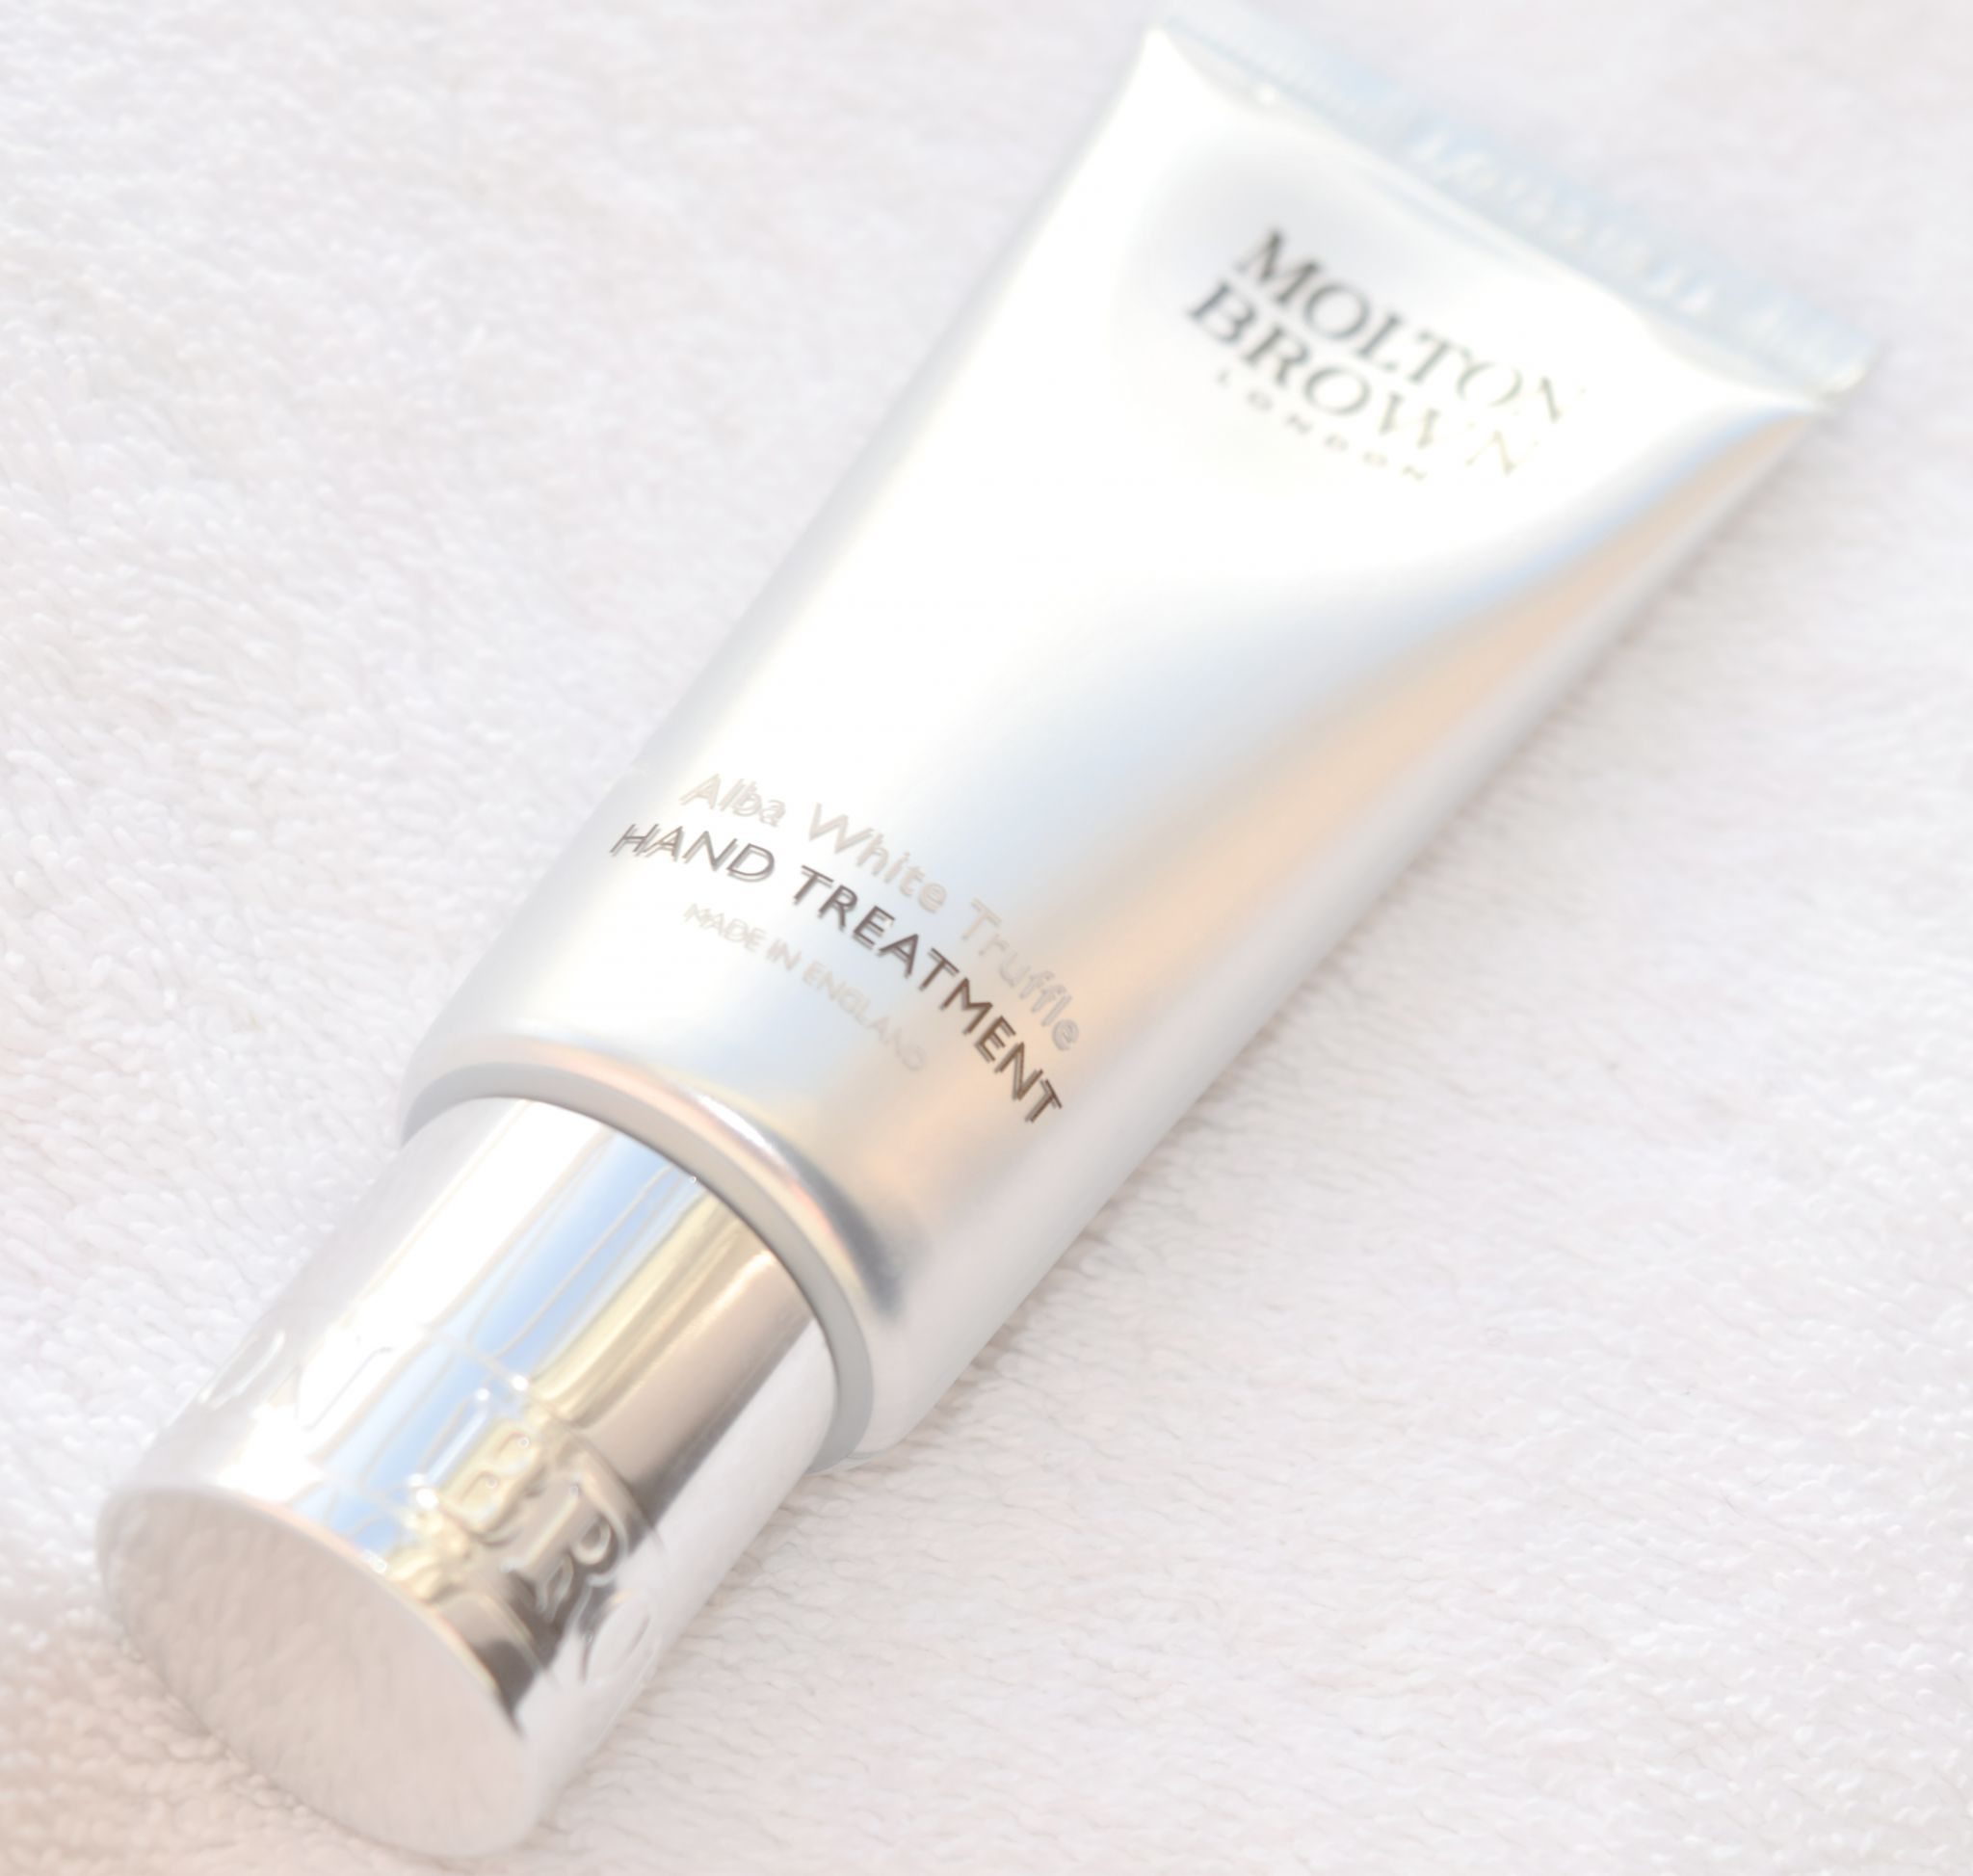 Molton Brown White Truffle Hand Treatment 1